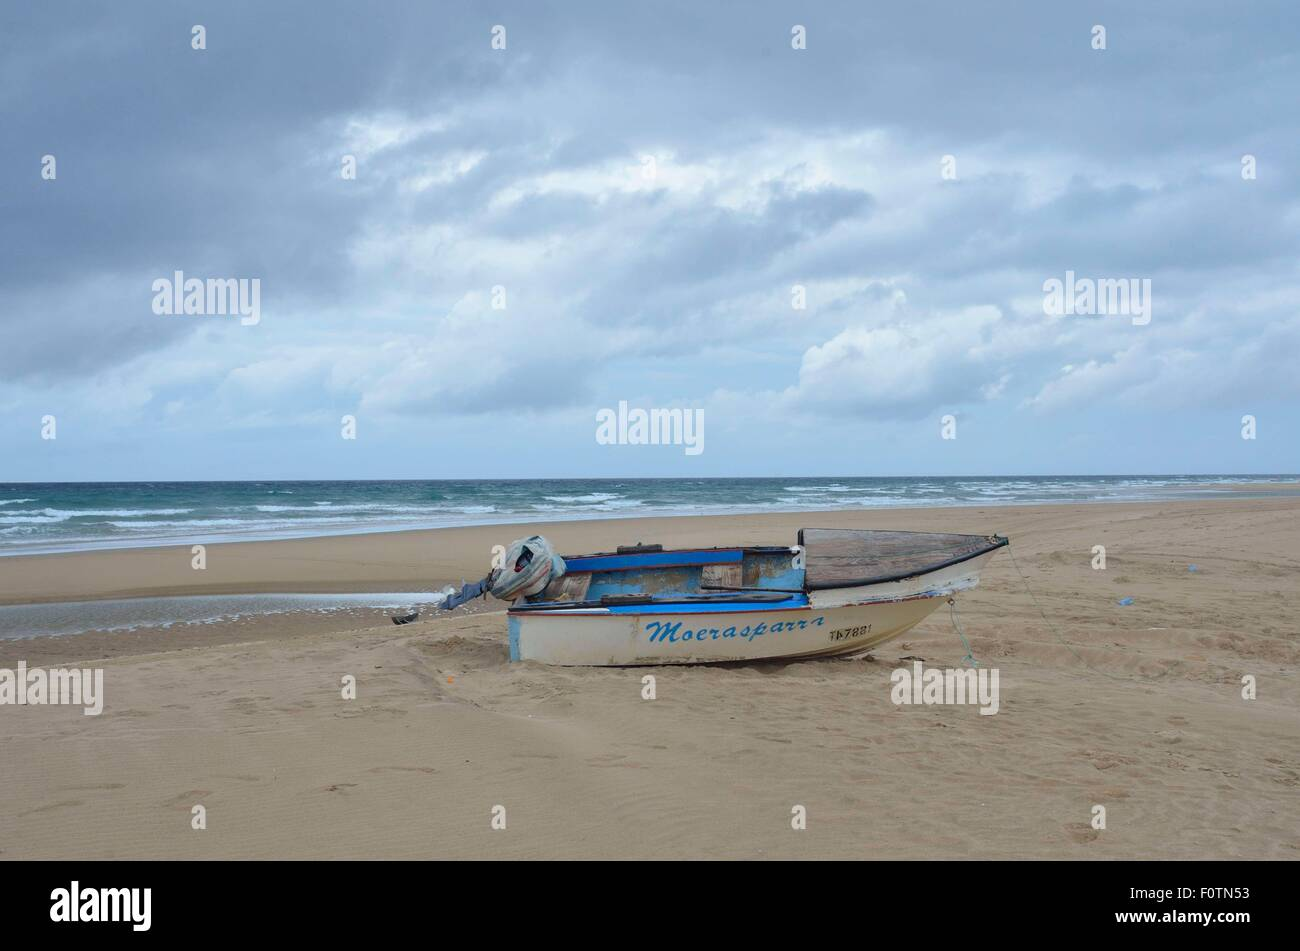 Old dilapidated fishing boats lying on the beach at Inhambane, Mozambique. These are unsafe and home repaired but - Stock Image